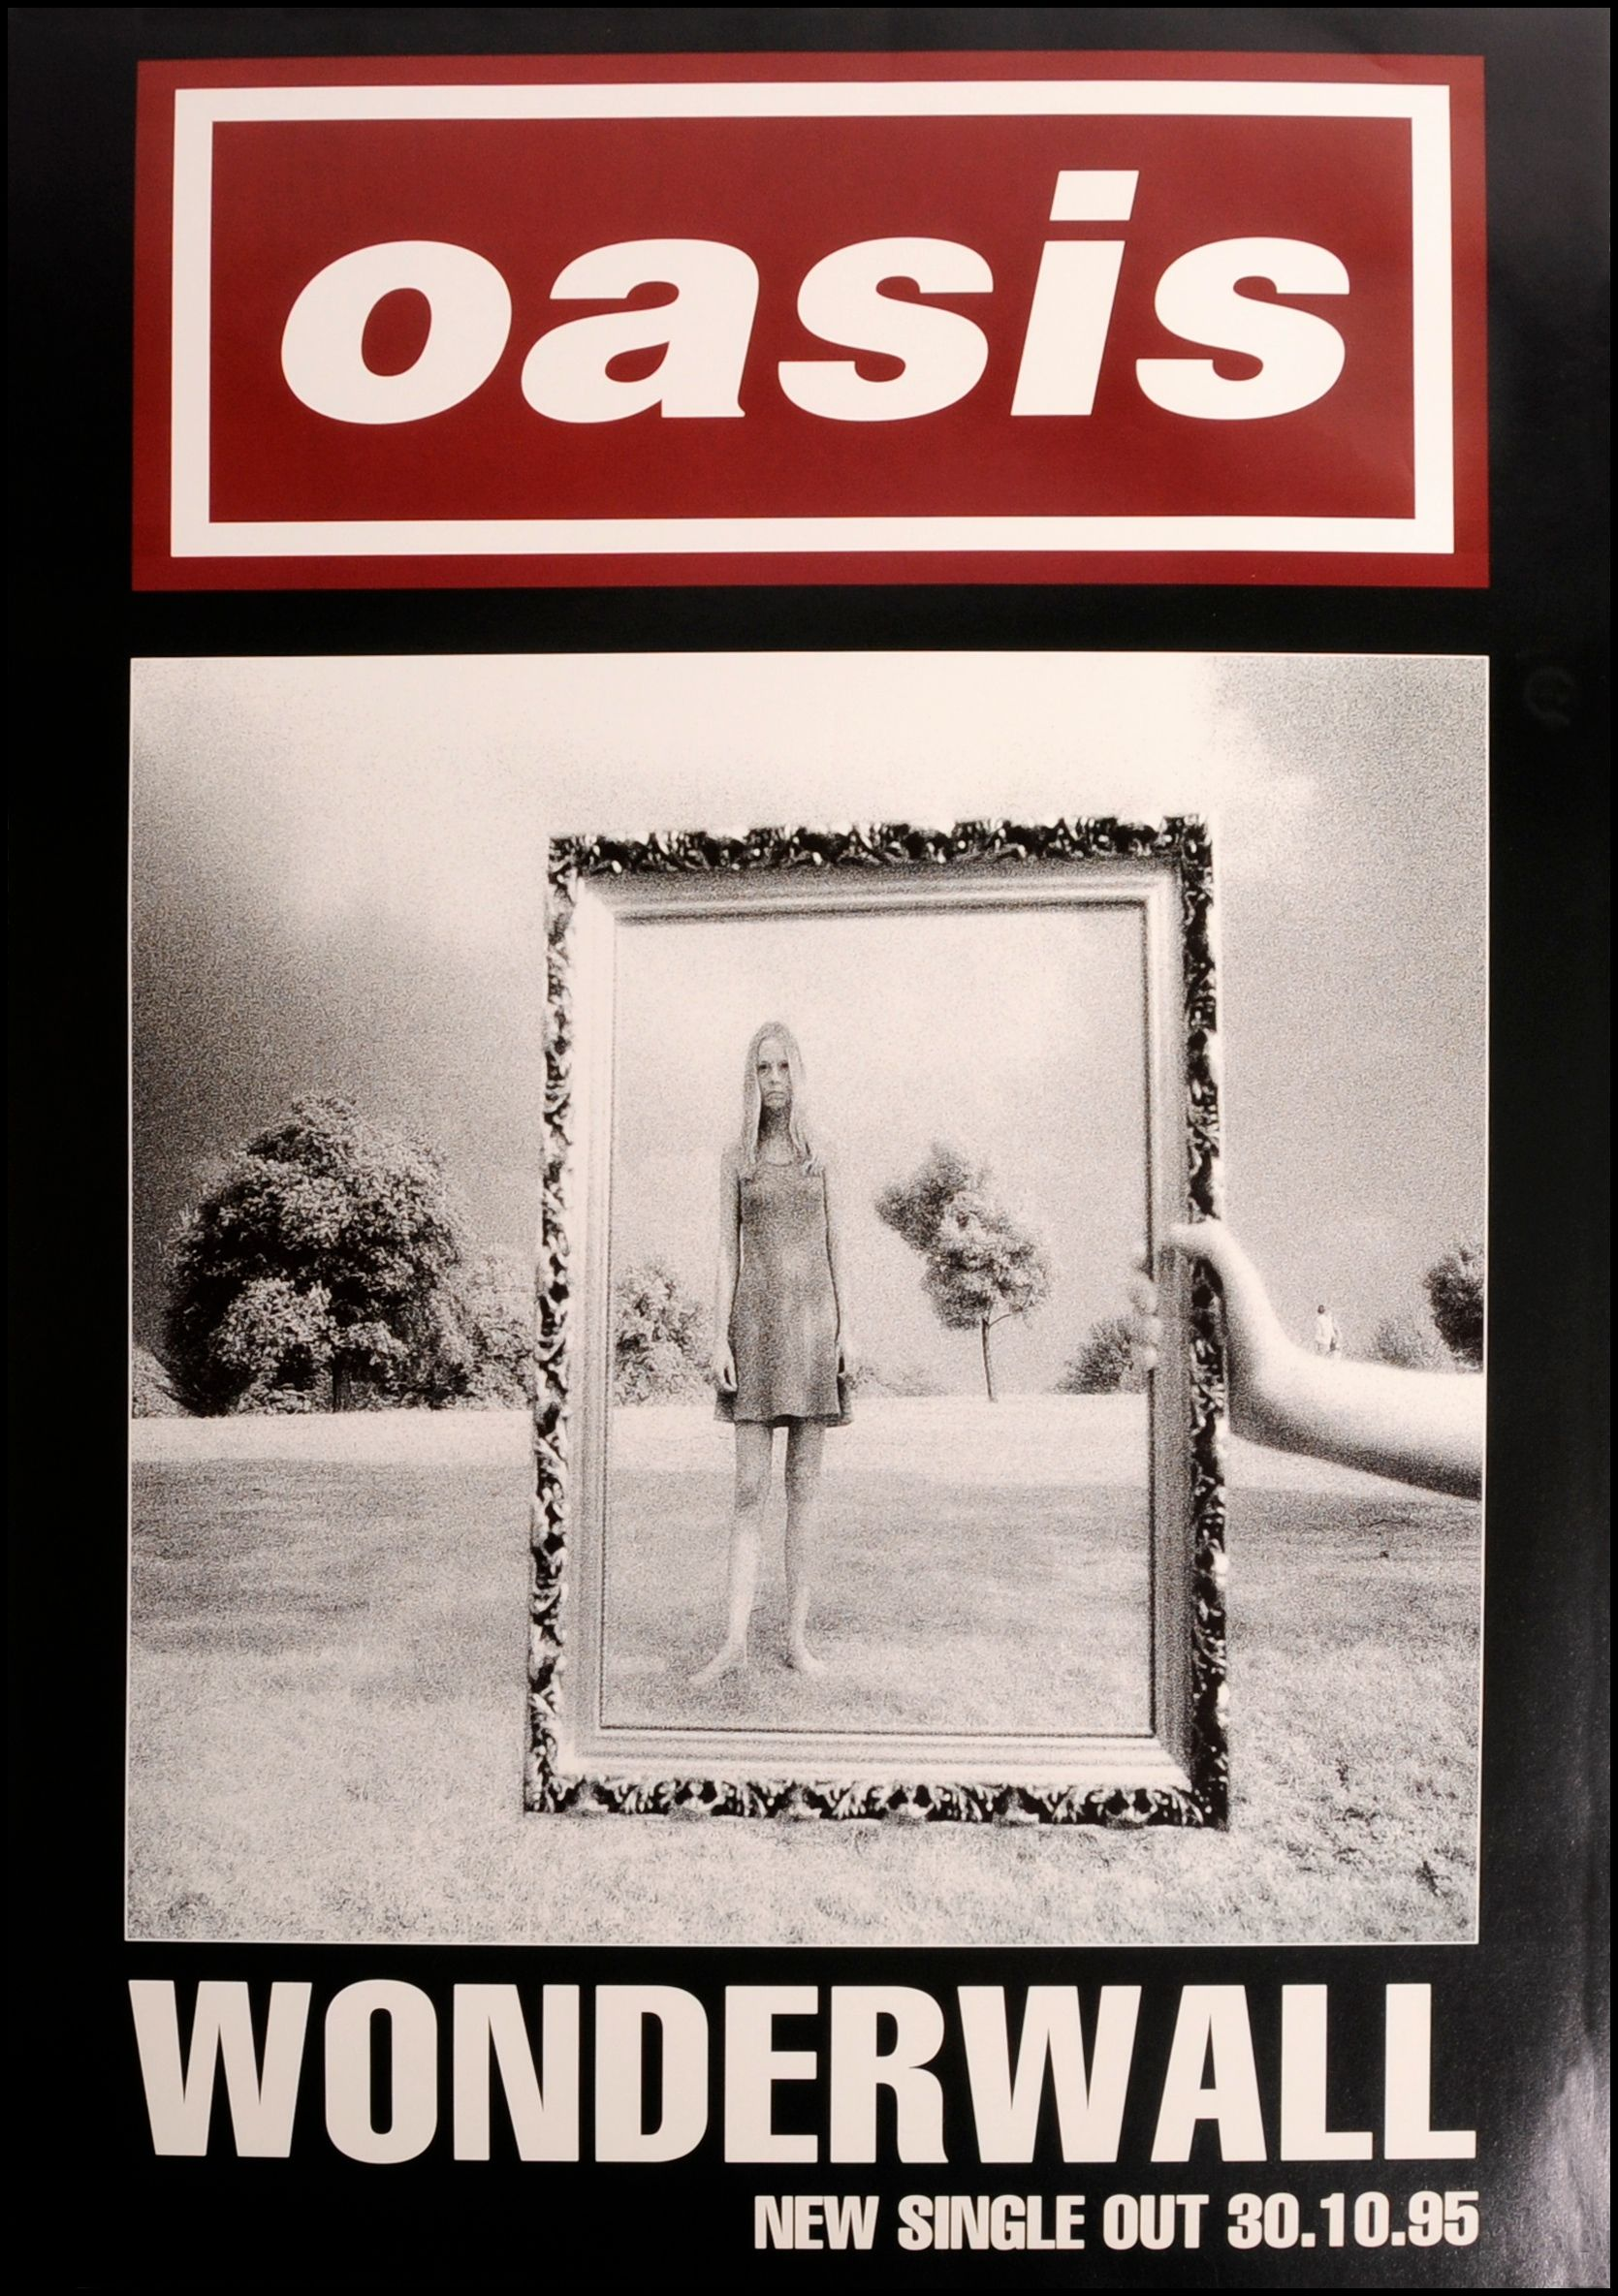 Oasis - Wonderwall | Musicians and Bands | Oasis band ... Oasis Band Album Cover